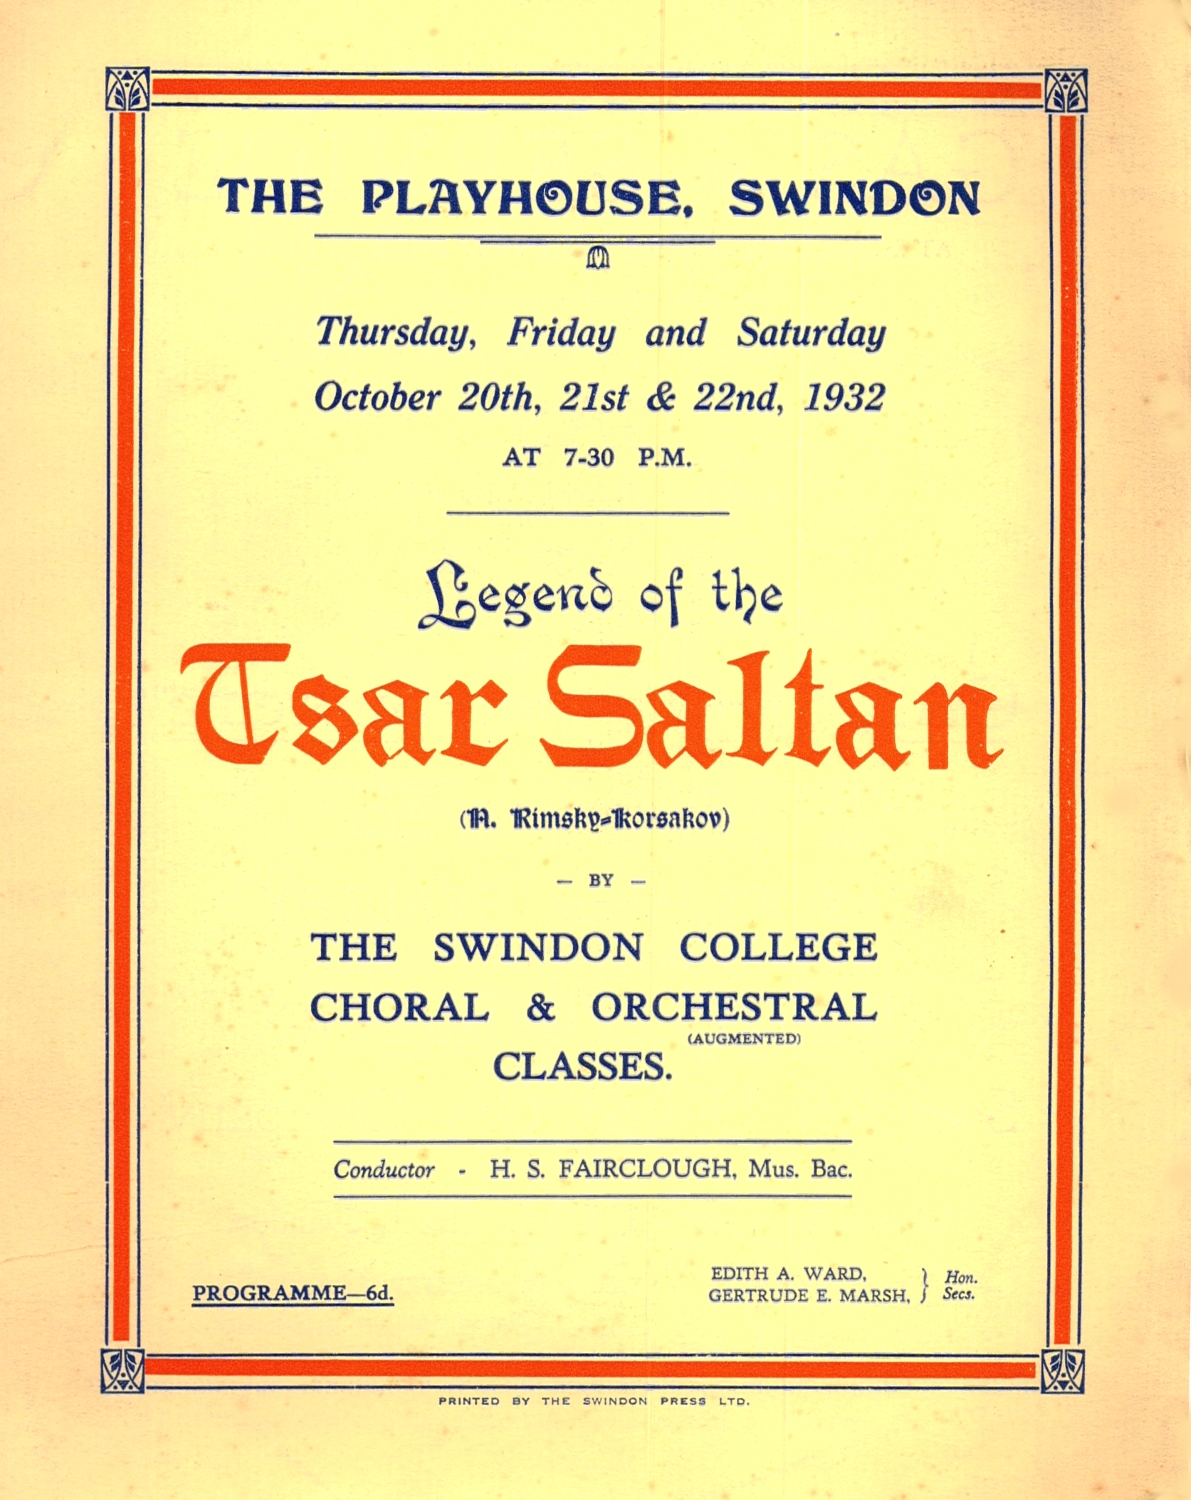 10 - Exteension - 1932 Playhouse prog cover